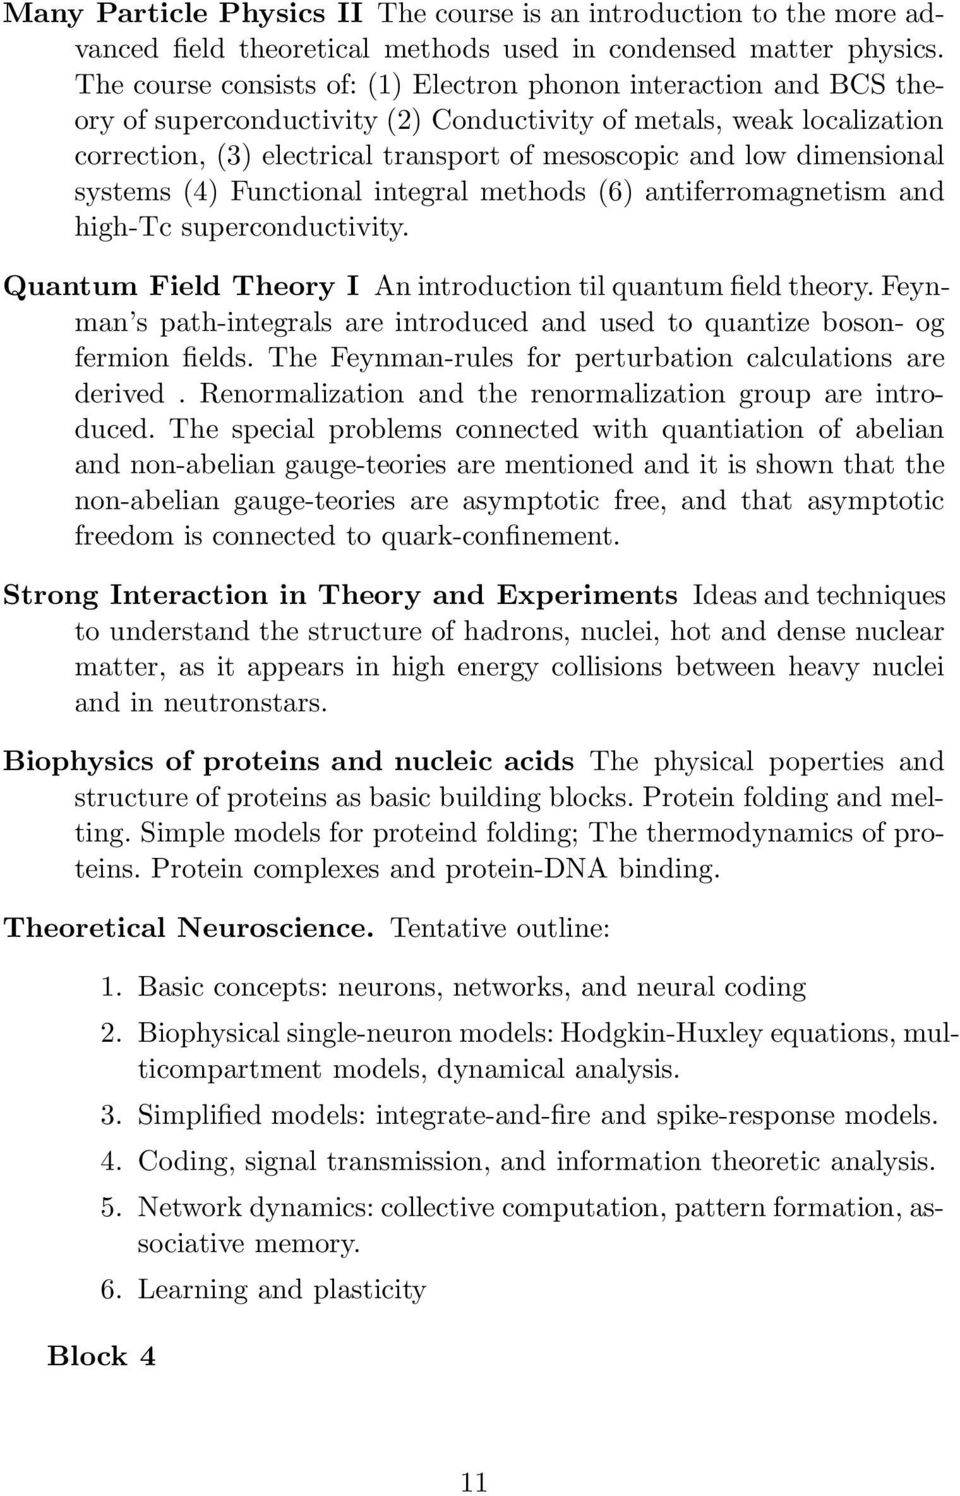 dimensional systems (4) Functional integral methods (6) antiferromagnetism and high-tc superconductivity. Quantum Field Theory I An introduction til quantum field theory.